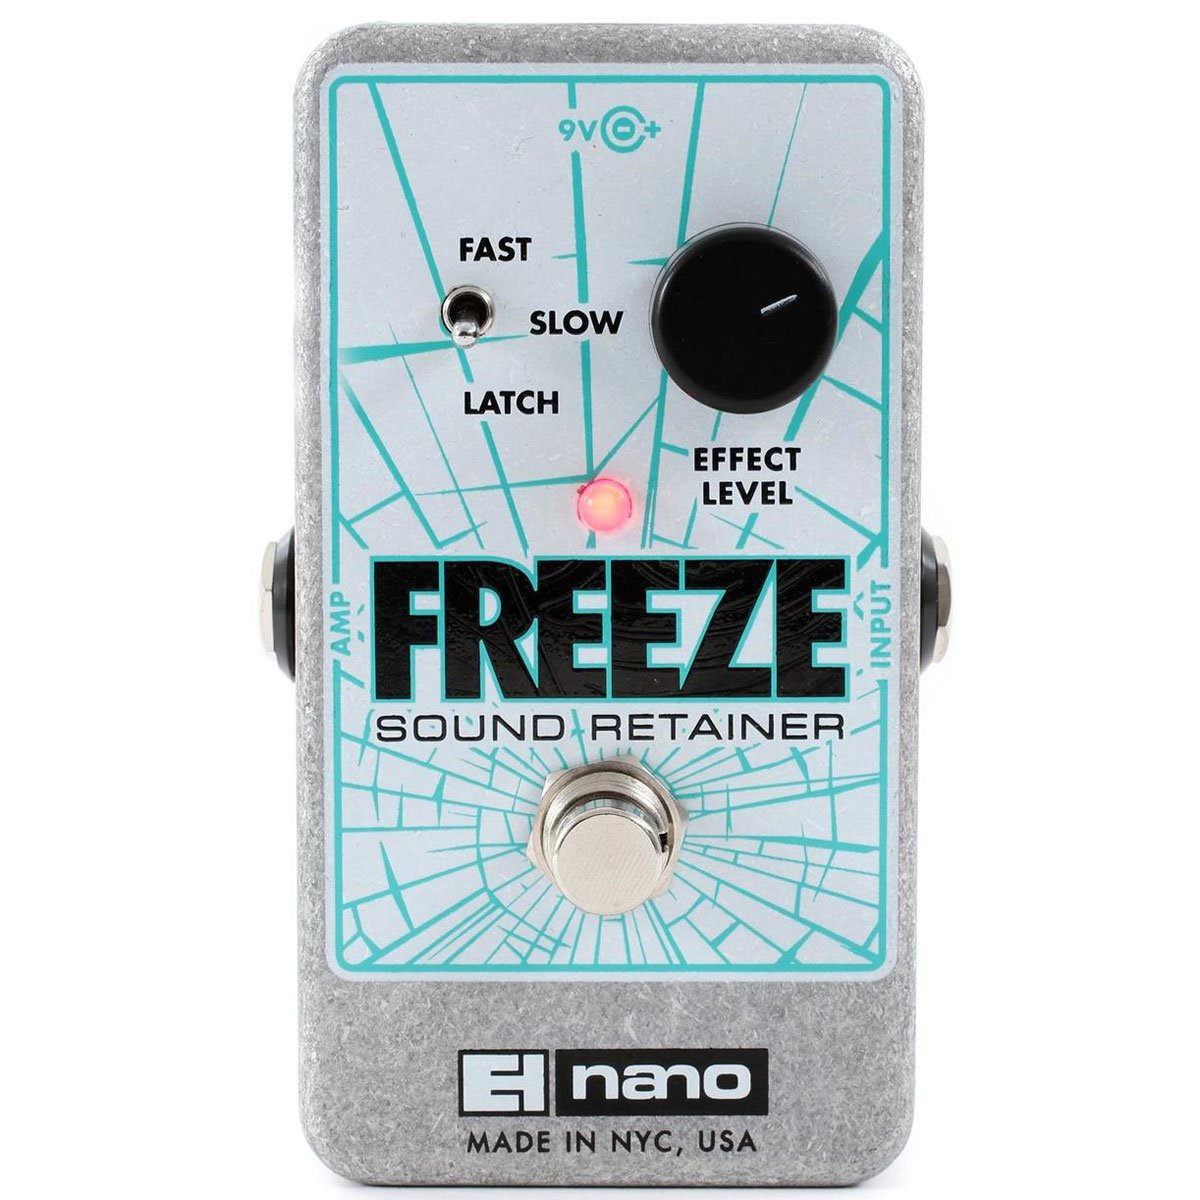 Electro Harmonix - Freeze - Infinite Sustain Pedal (PSU Included) | Lucky Fret Music Co.